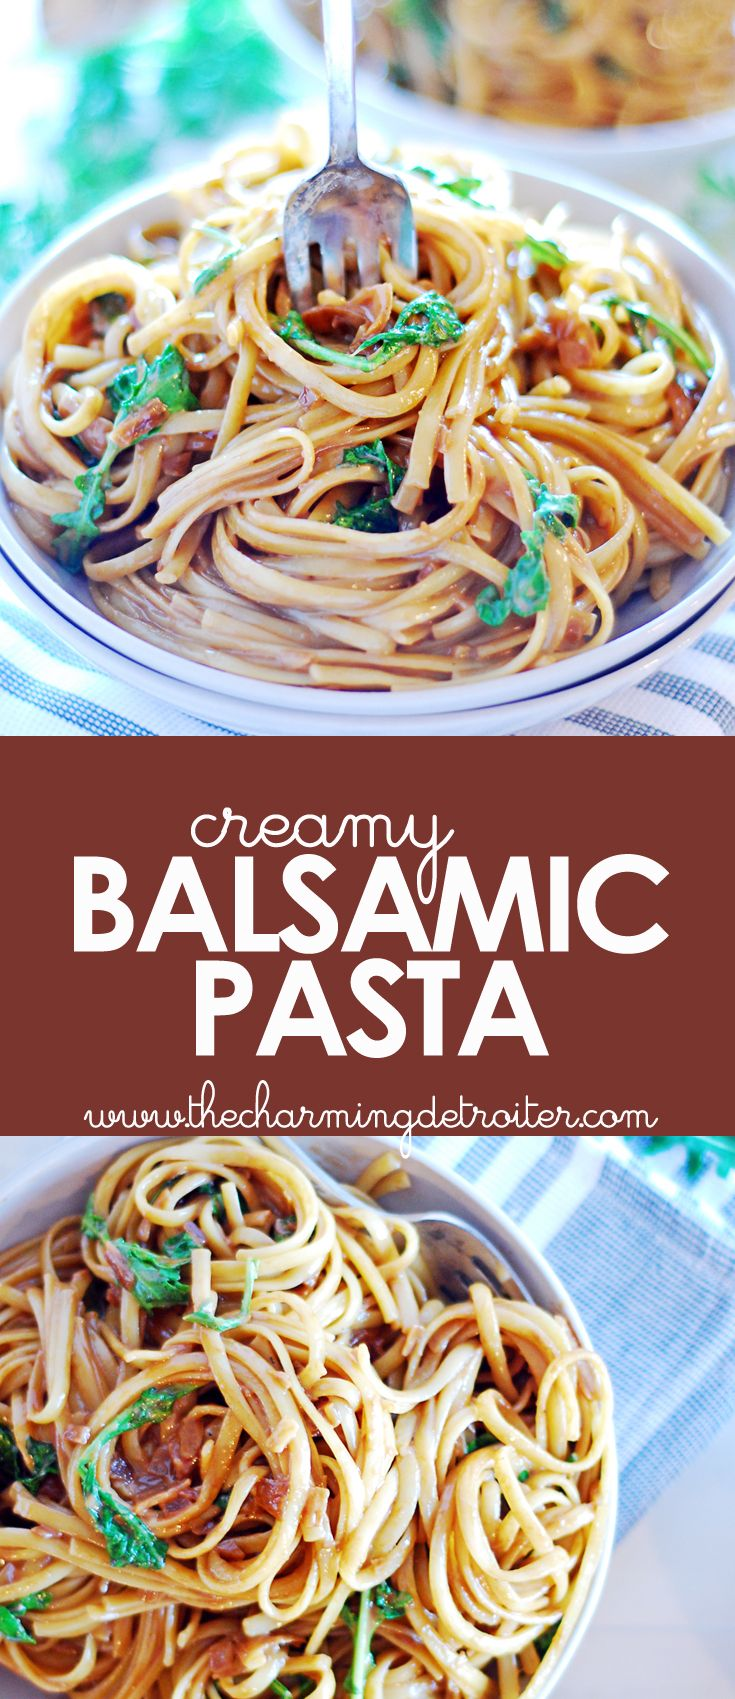 This creamy balsamic pasta makes for a super simple side dish - perfect for weeknights when there just isn't time to cook!